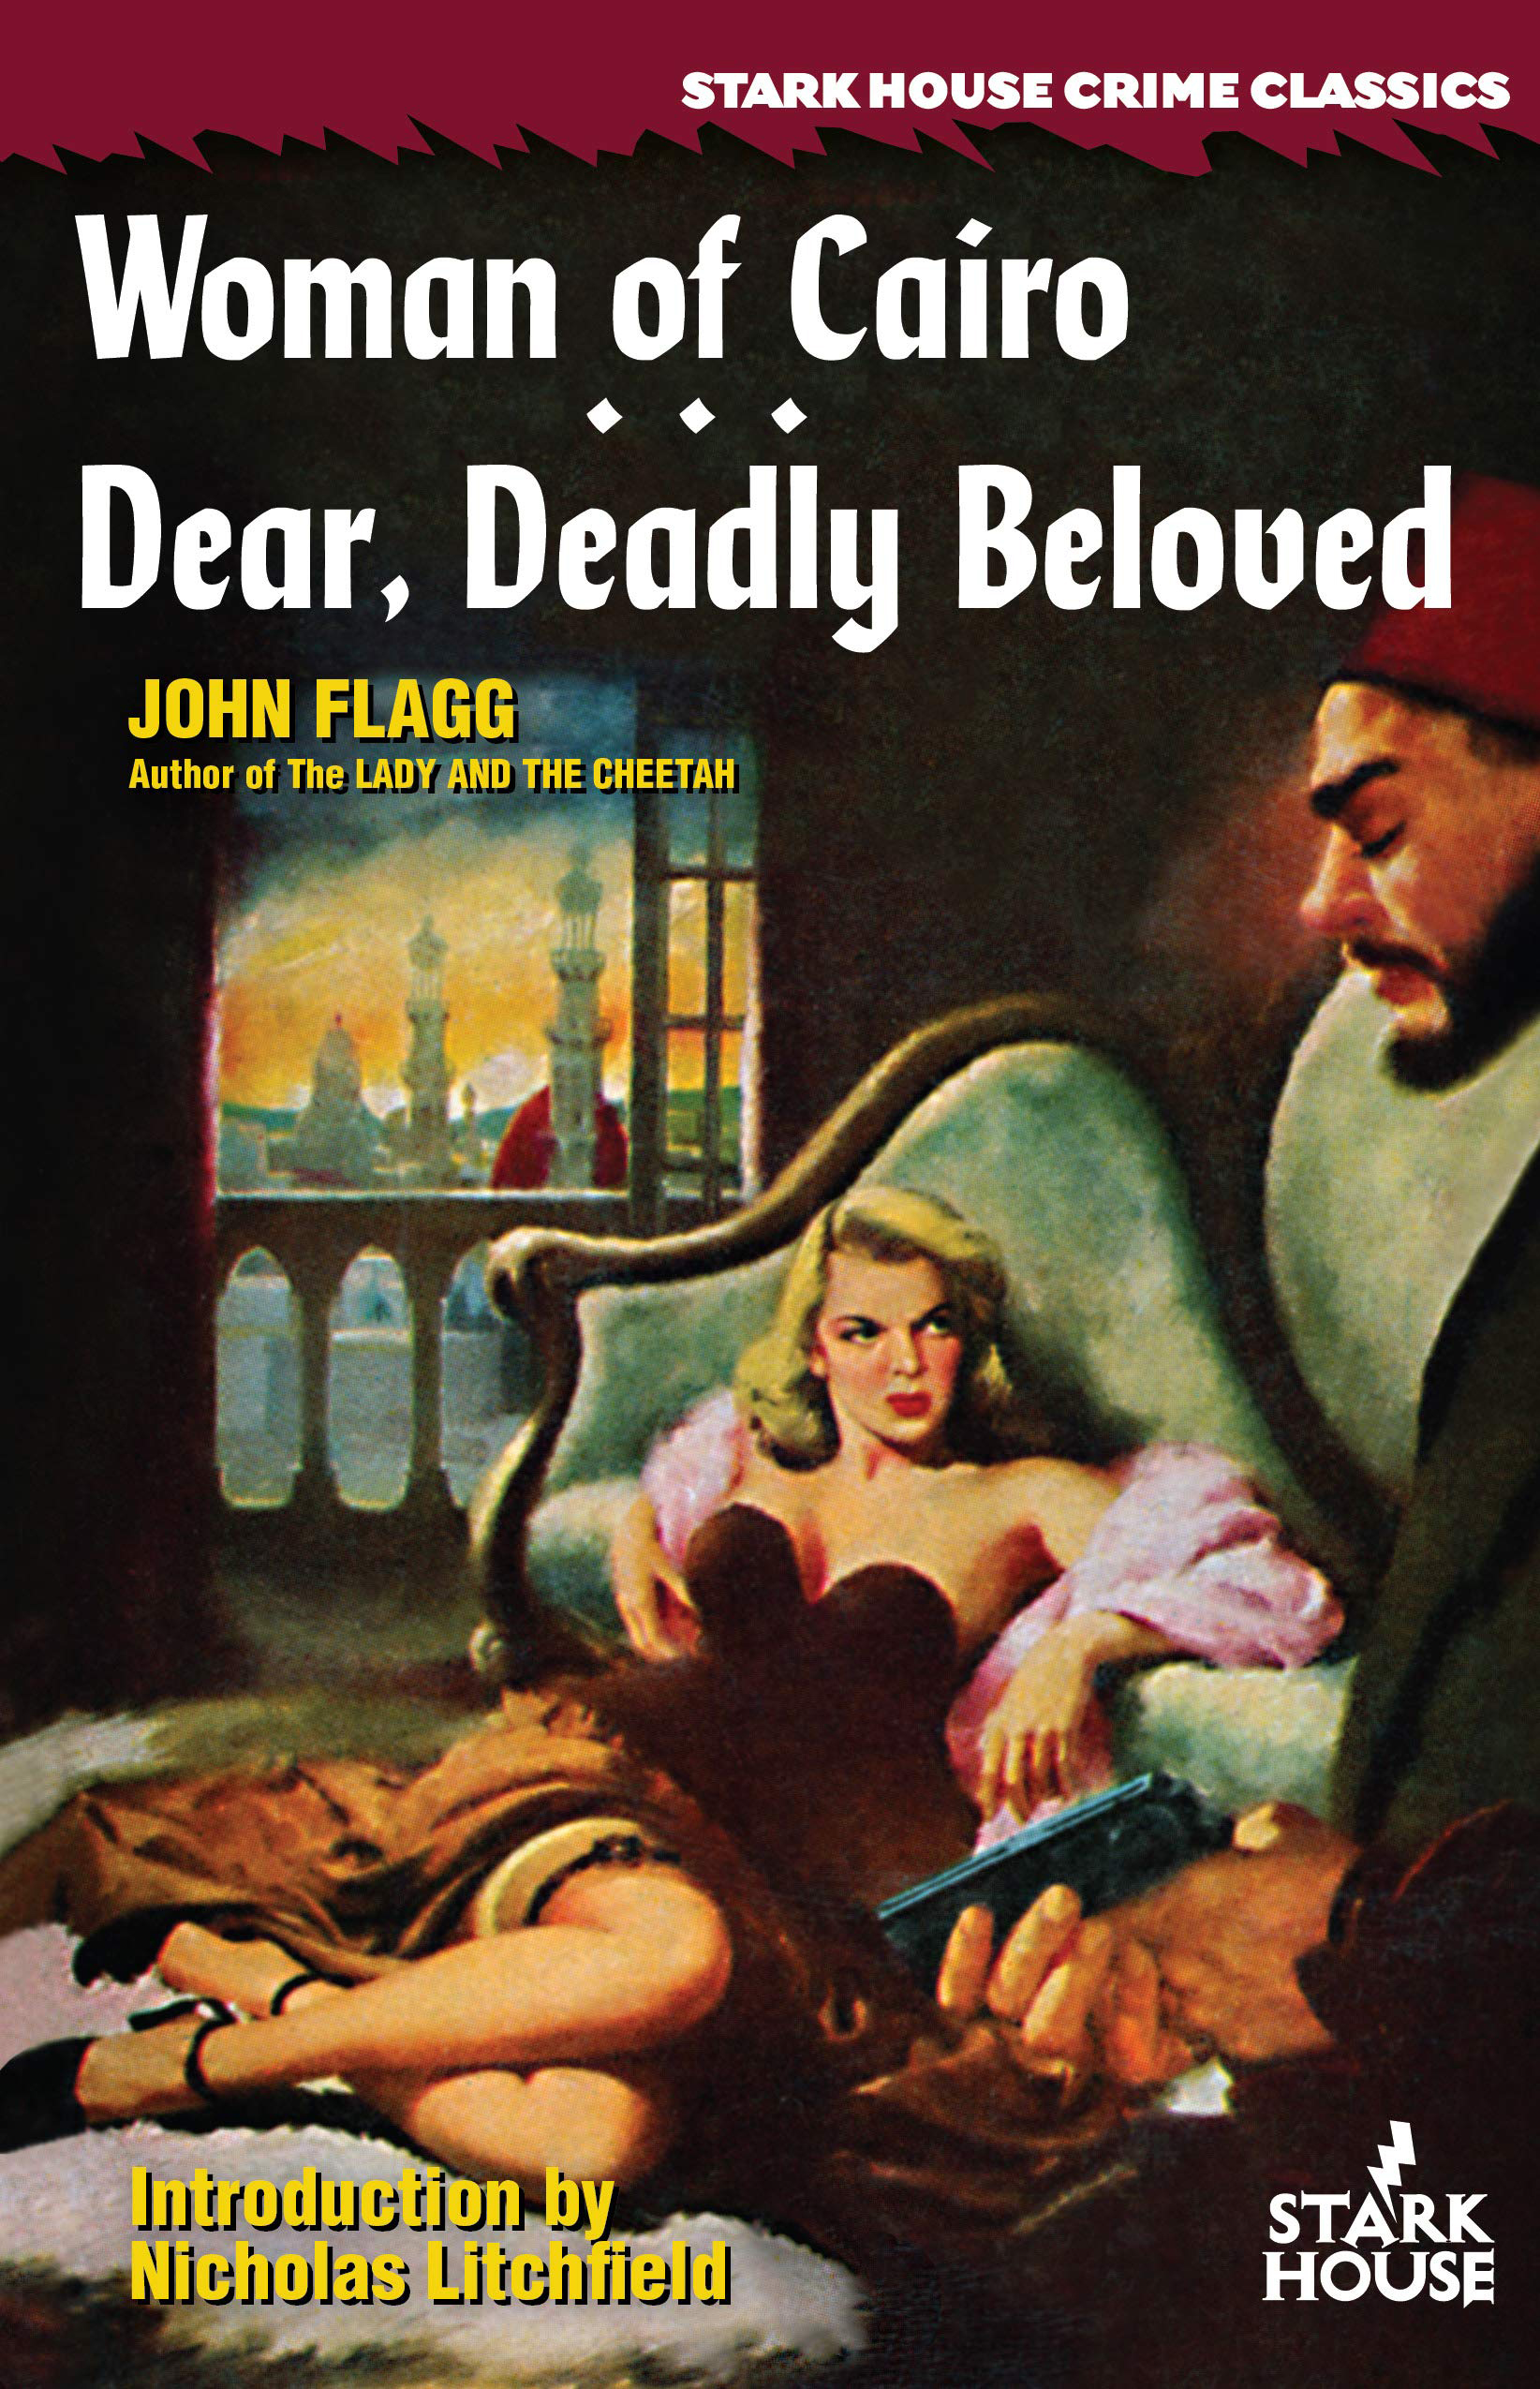 Woman of Cairo and Dear, Deadly Beloved by John Flagg (Introduction by Nicholas Litchfield)